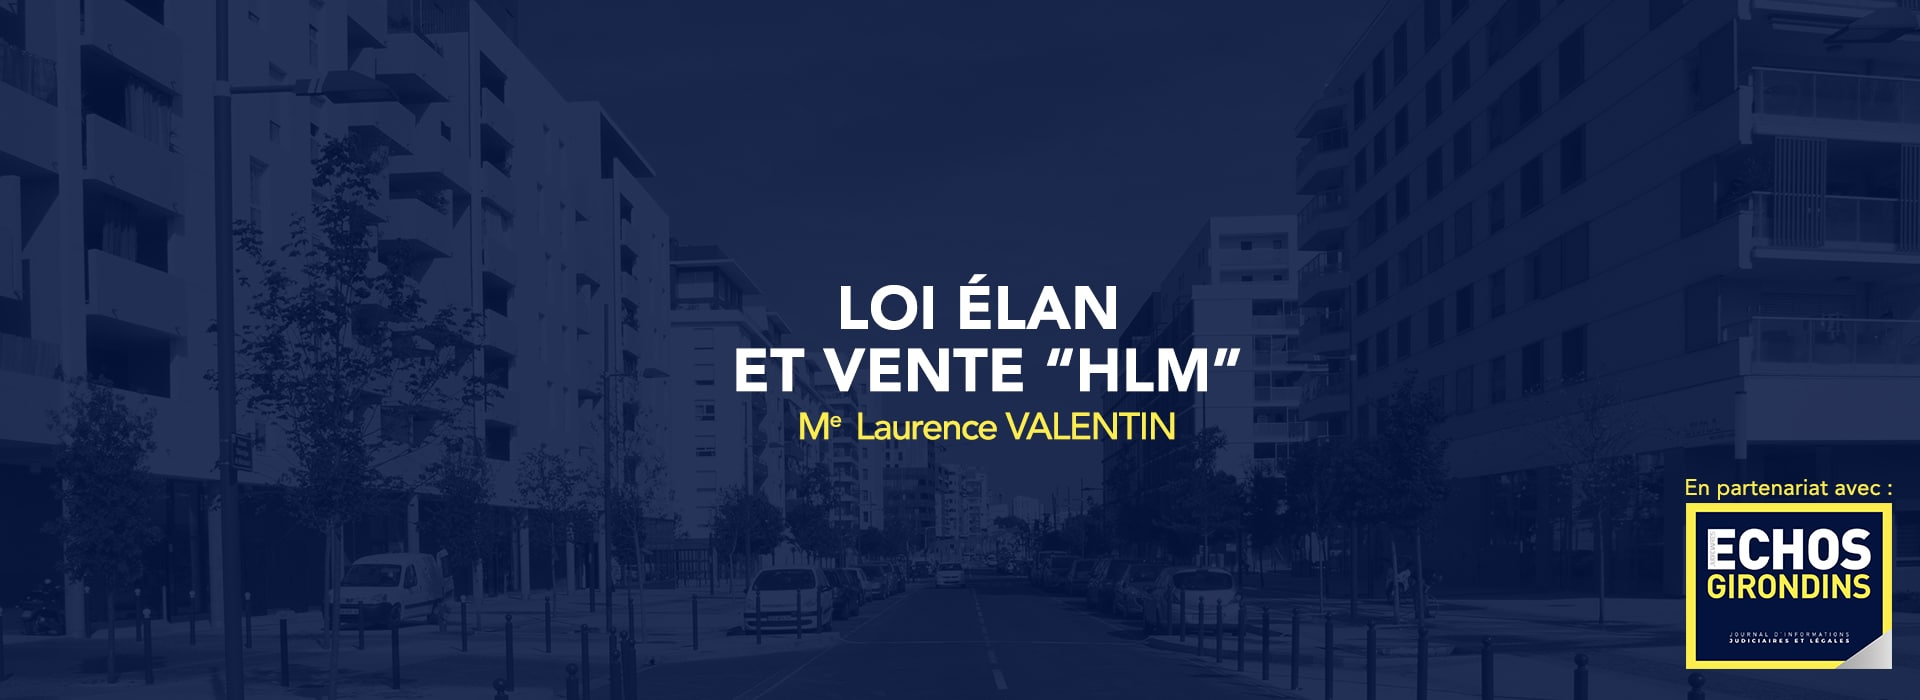 CDNG EchoArticle Valentin